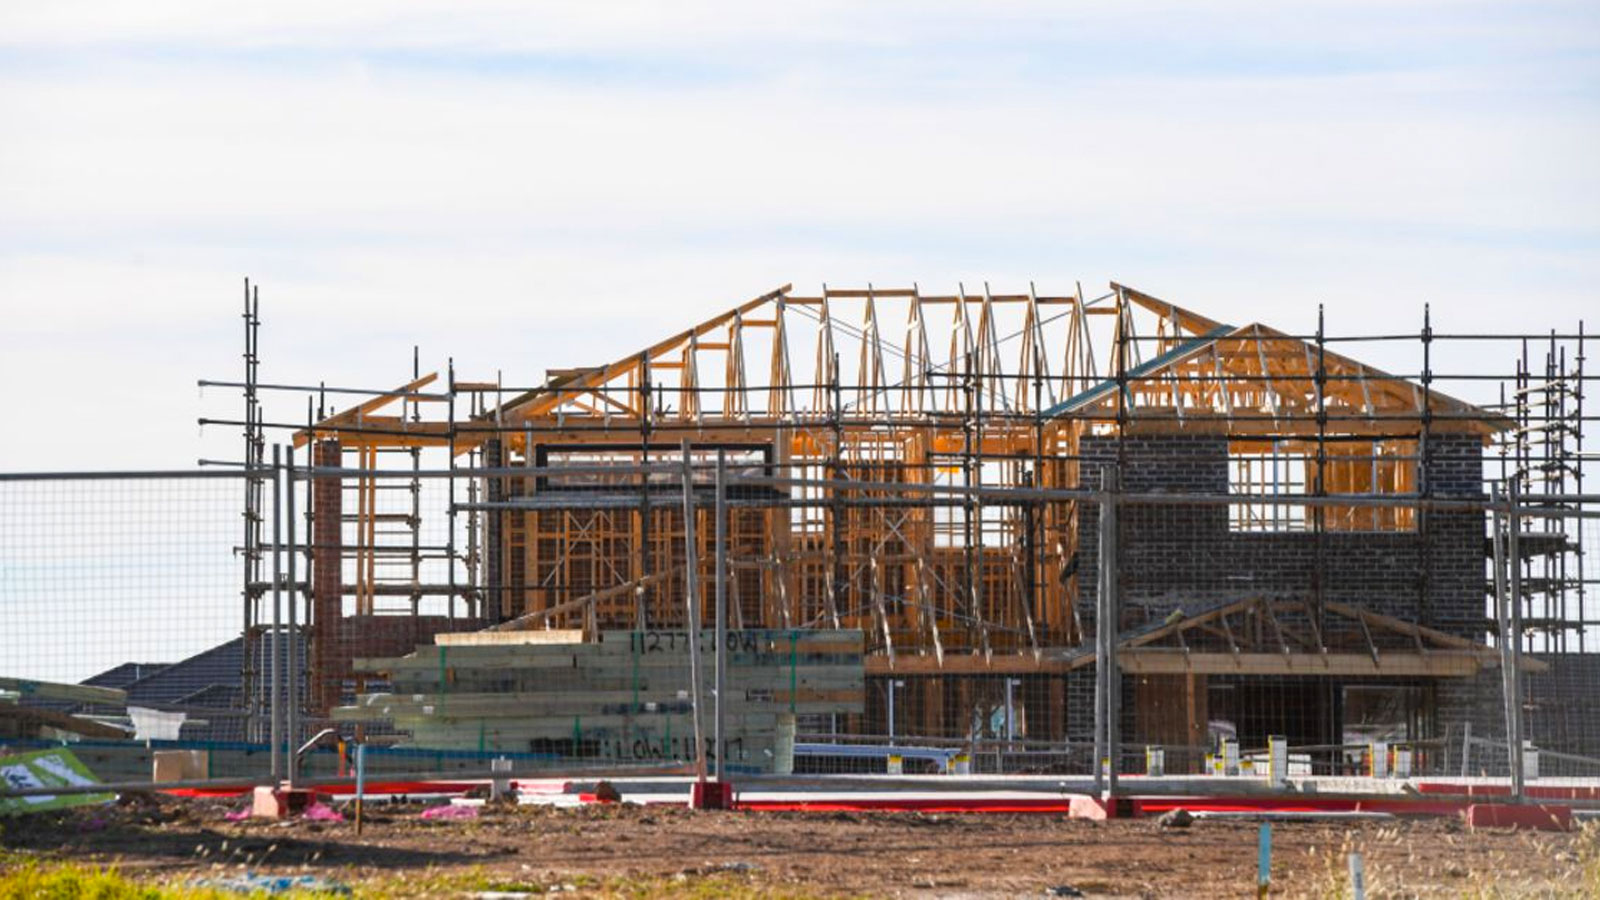 ▲ Developers say banks missing deadlines for settlements are causing costly delays.